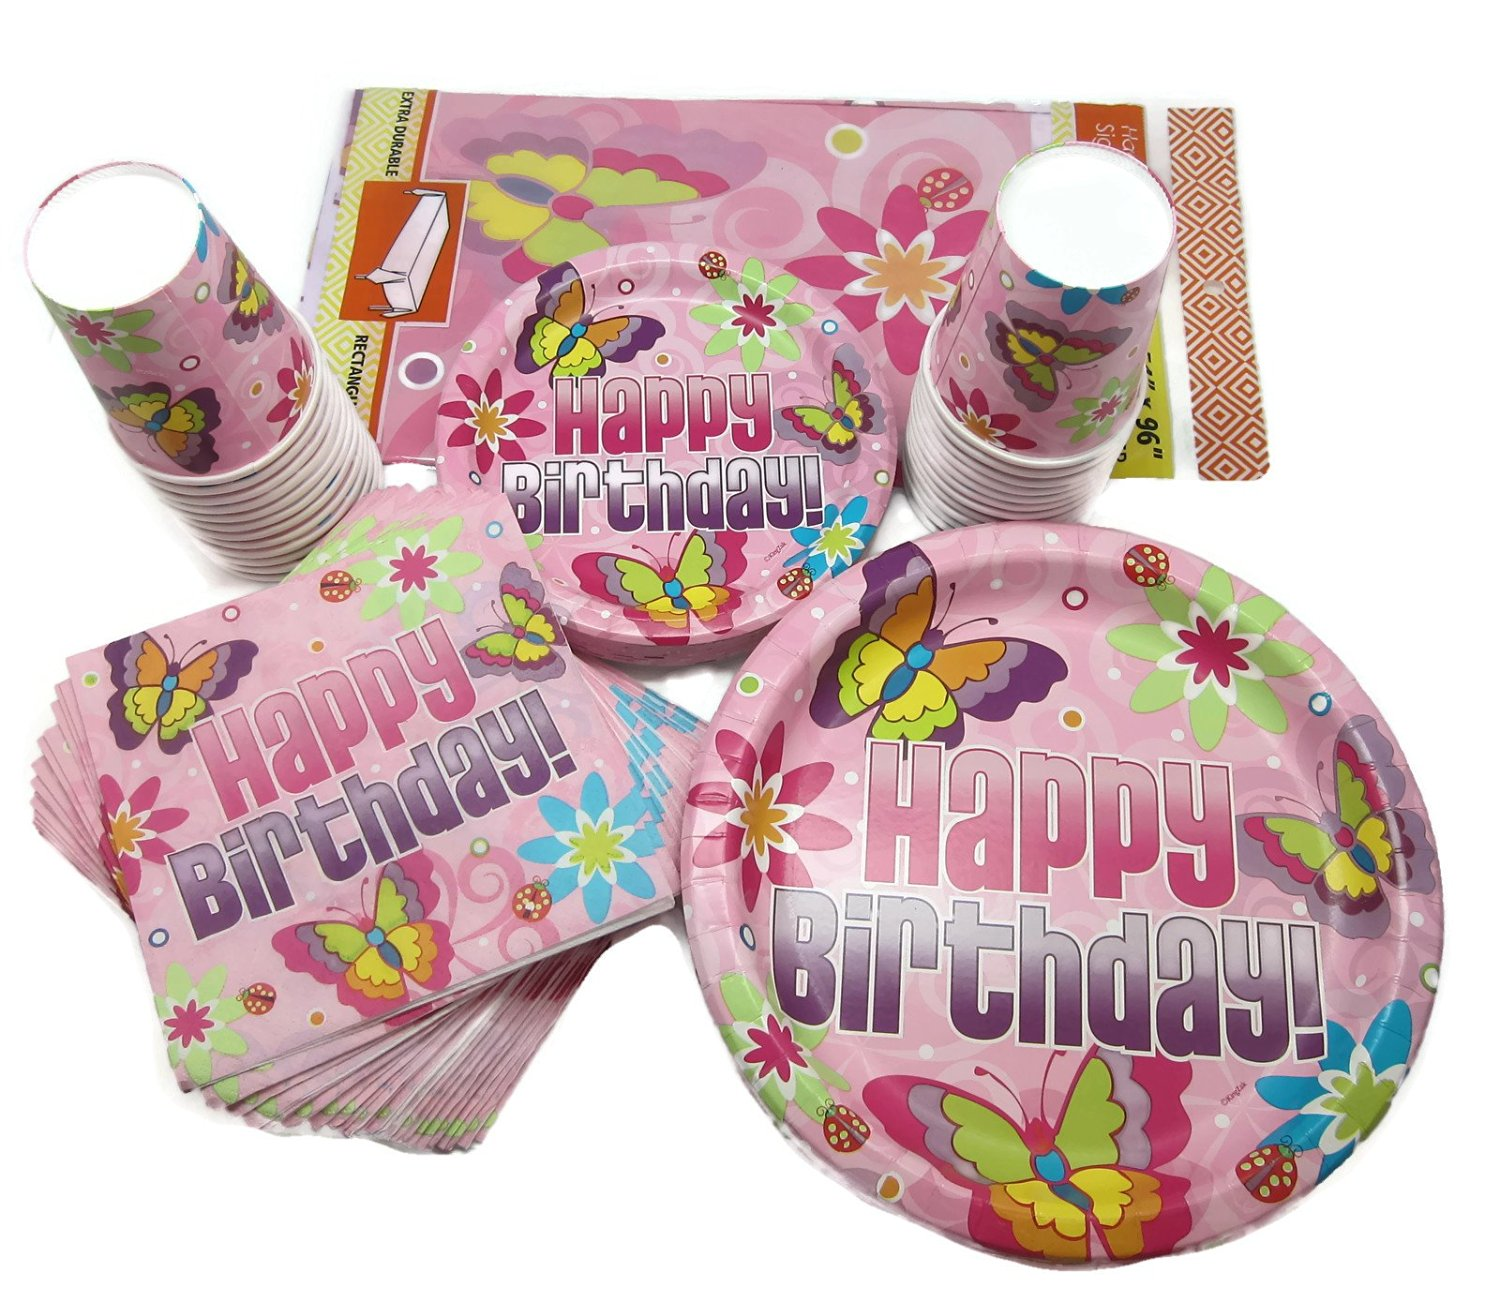 Hannah K Signature Collection Butterfly Birthday Party Supply Pack Bundle for 18 Guests - 5 Items: Dinner Plates, Dessert Plates, Napkins, Cups, Plastic Tablecloth